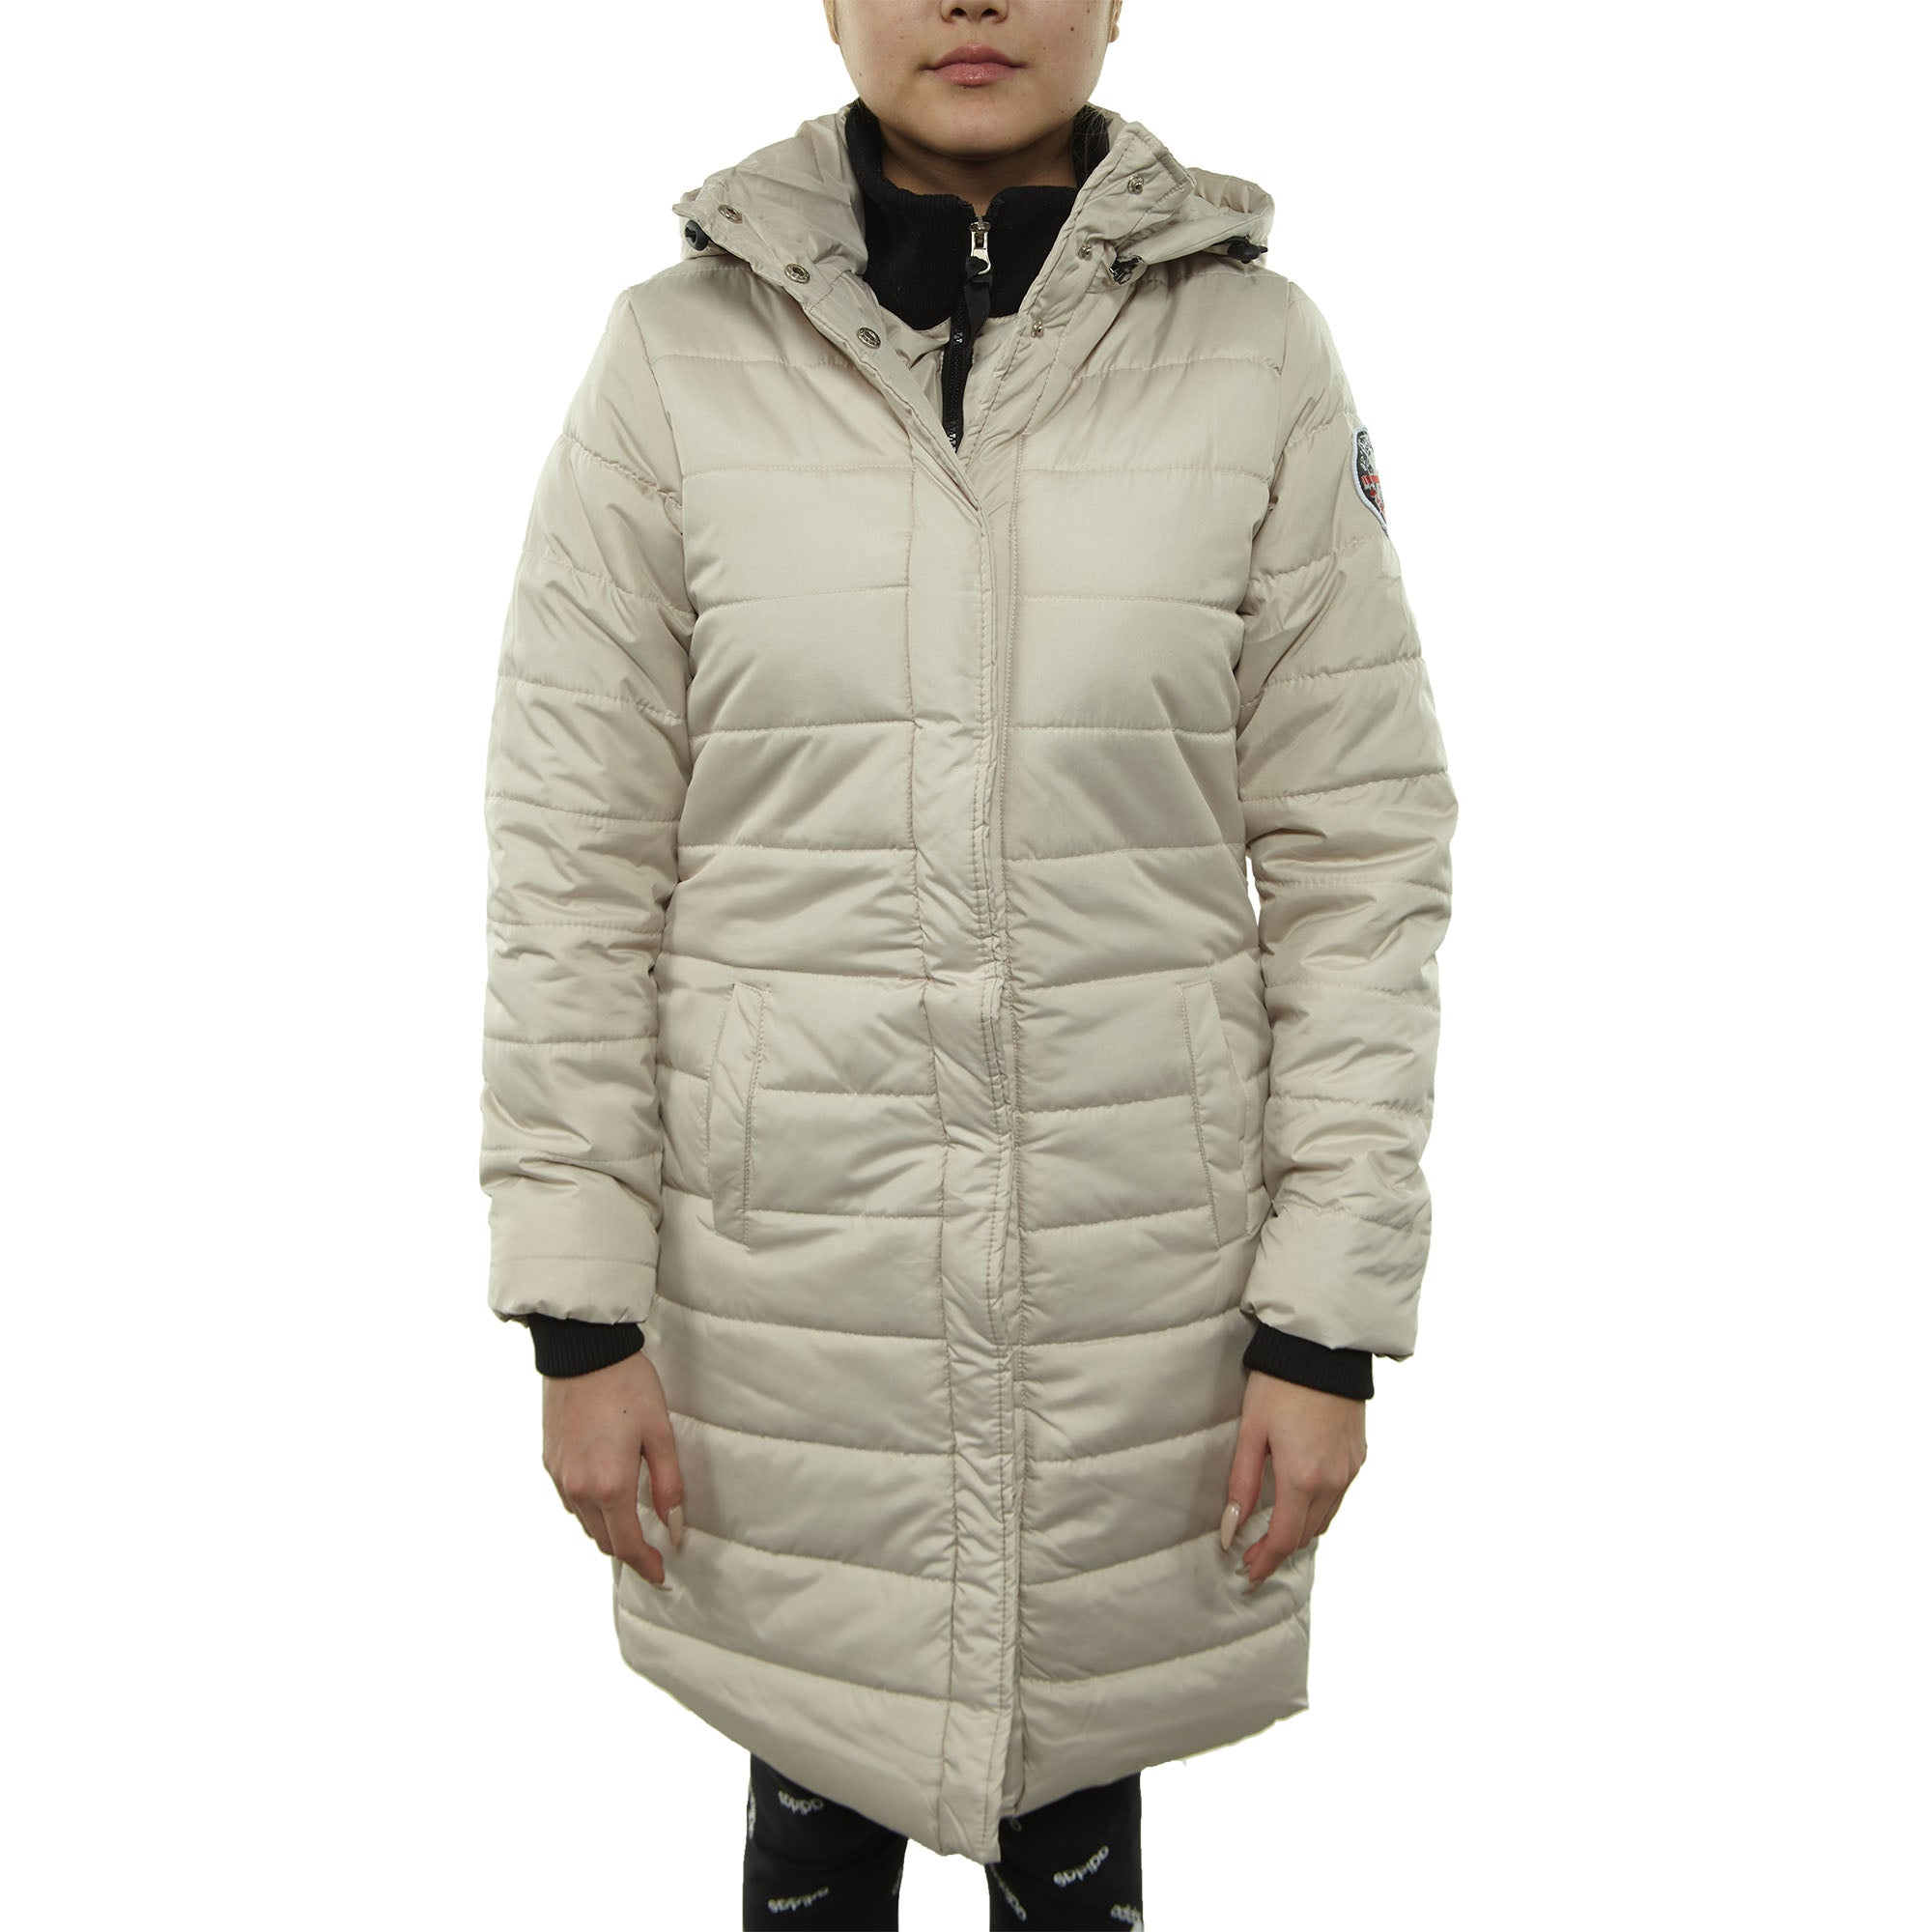 82 Degrees Fahrenheit Down Jacket Womens Style 30245 Sneaker Experts